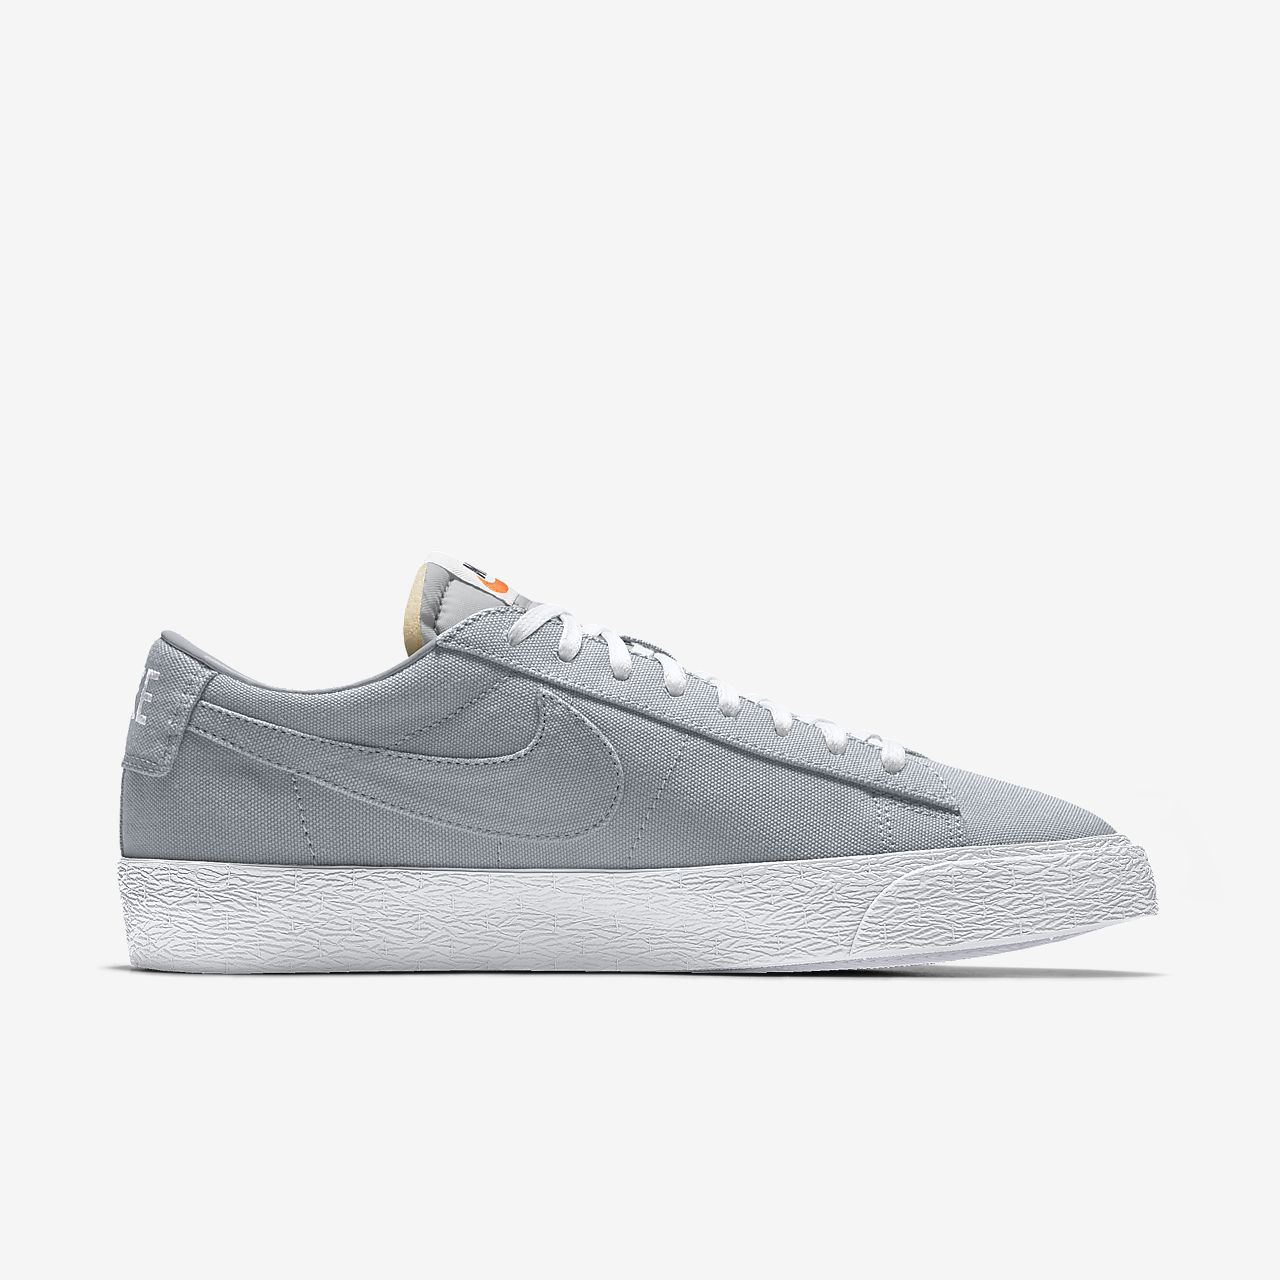 NIKE Official]Nike Blazer Low By You